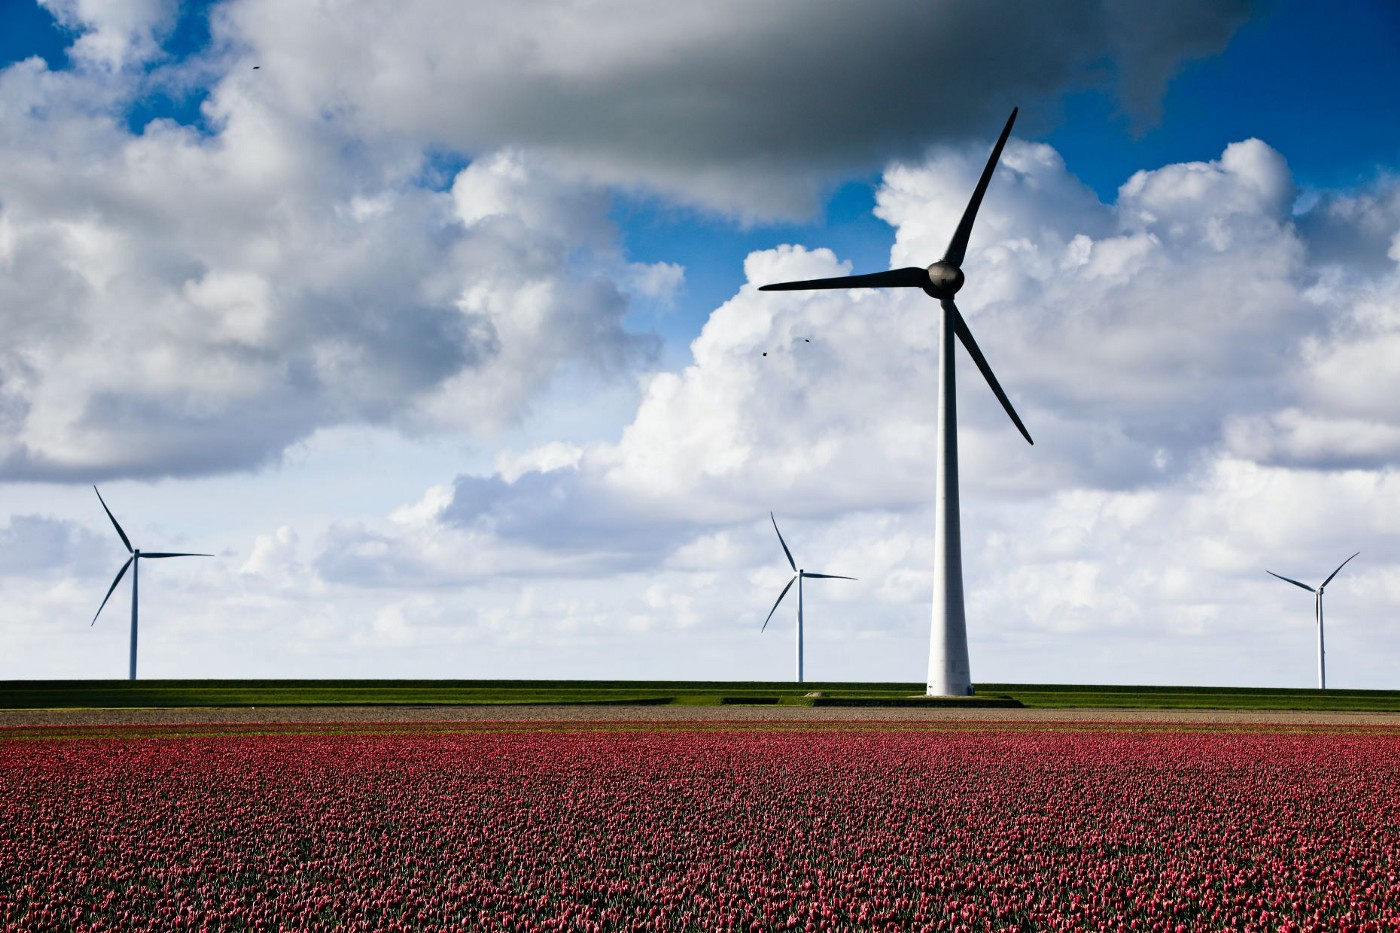 Photo of windmills over field of flowers